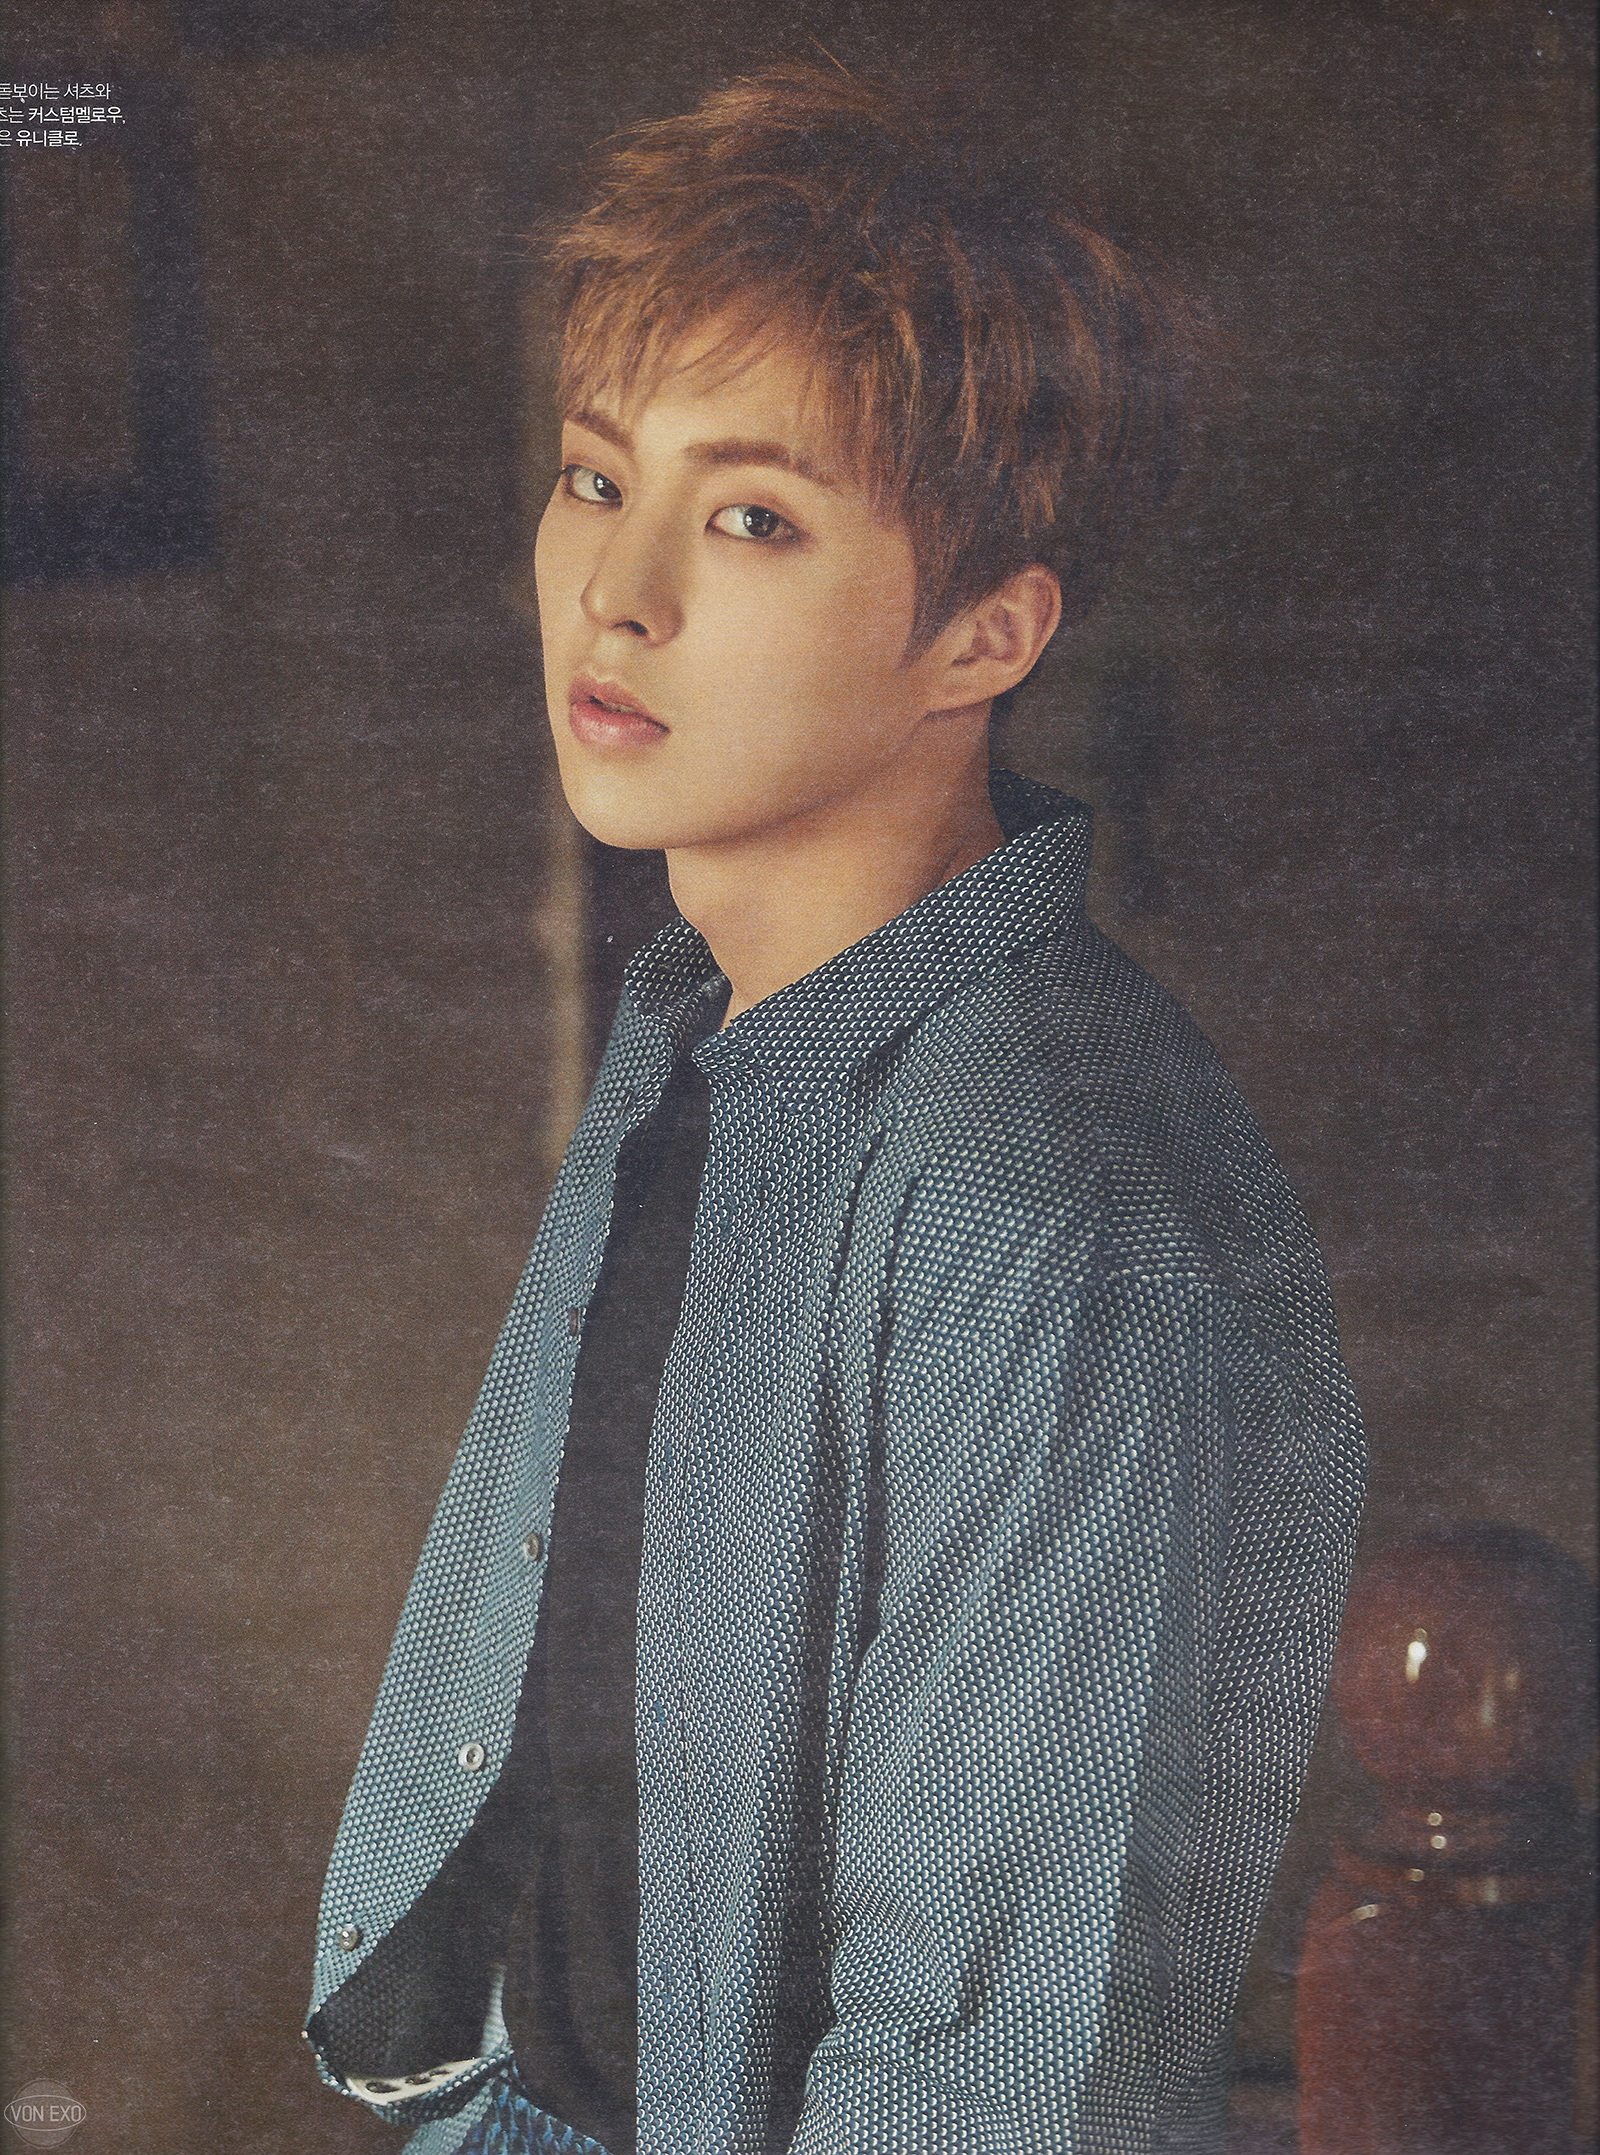 [HQ SCANS] Xiumin @ 1st Look July Issue No. 114   EXOTIC ...